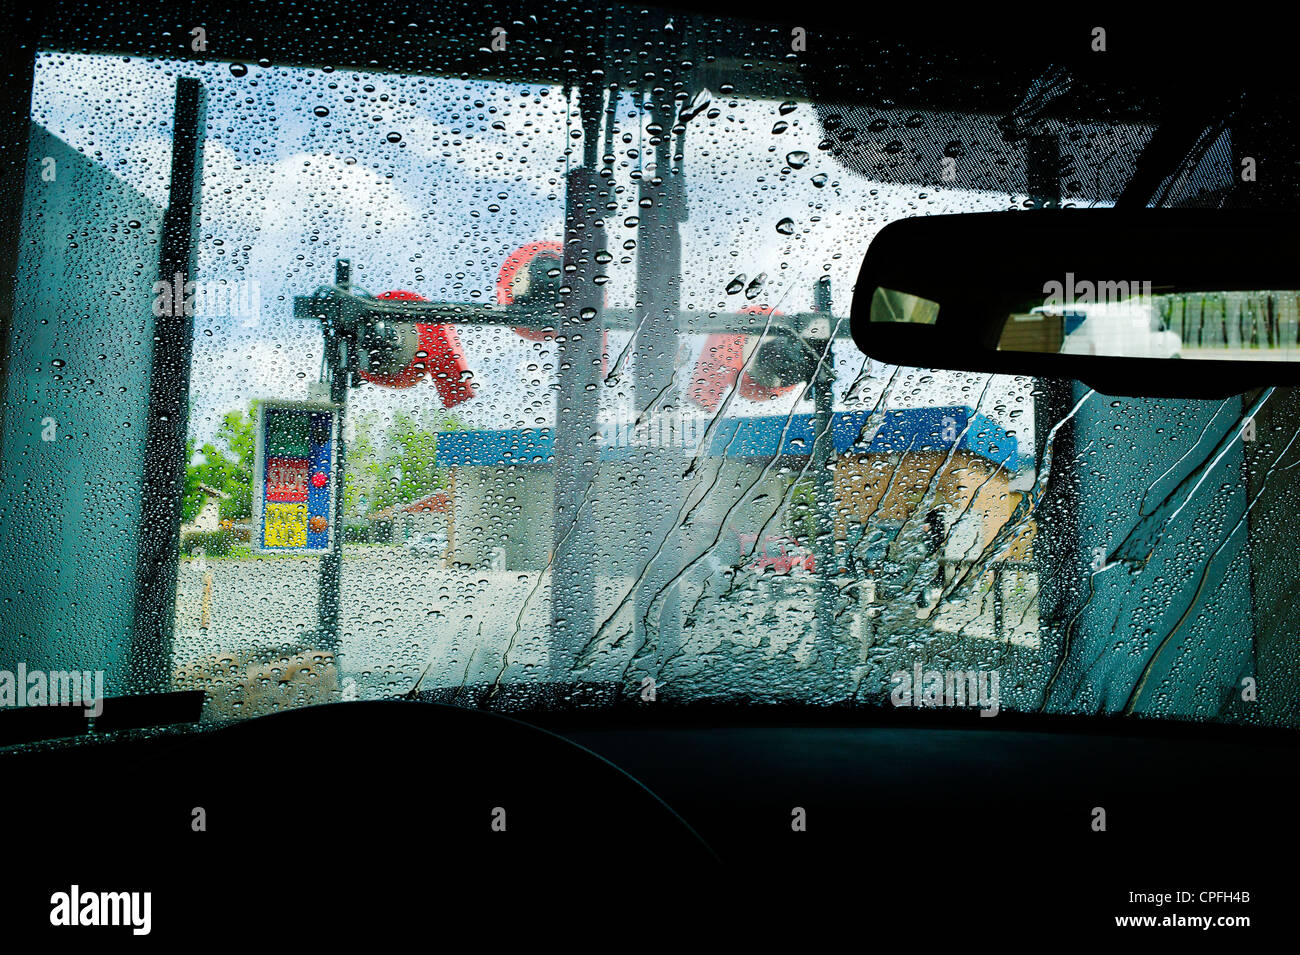 View through auto windshield, car wash - Stock Image